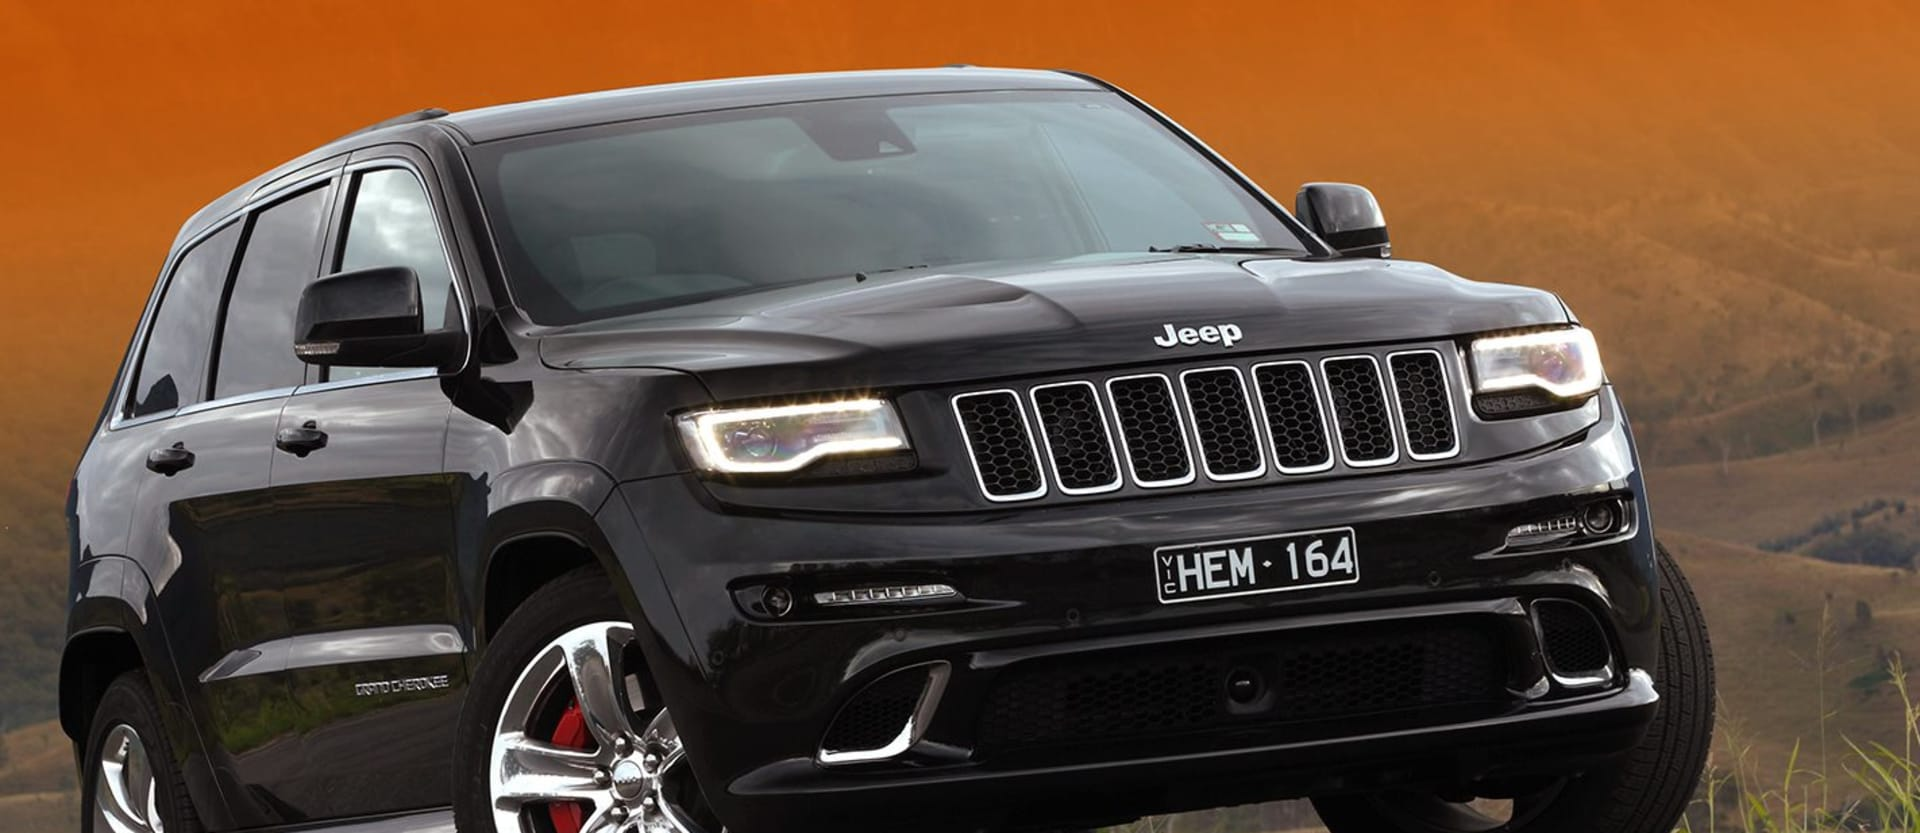 Jeep Grand Cherokee with the Hellcat engine